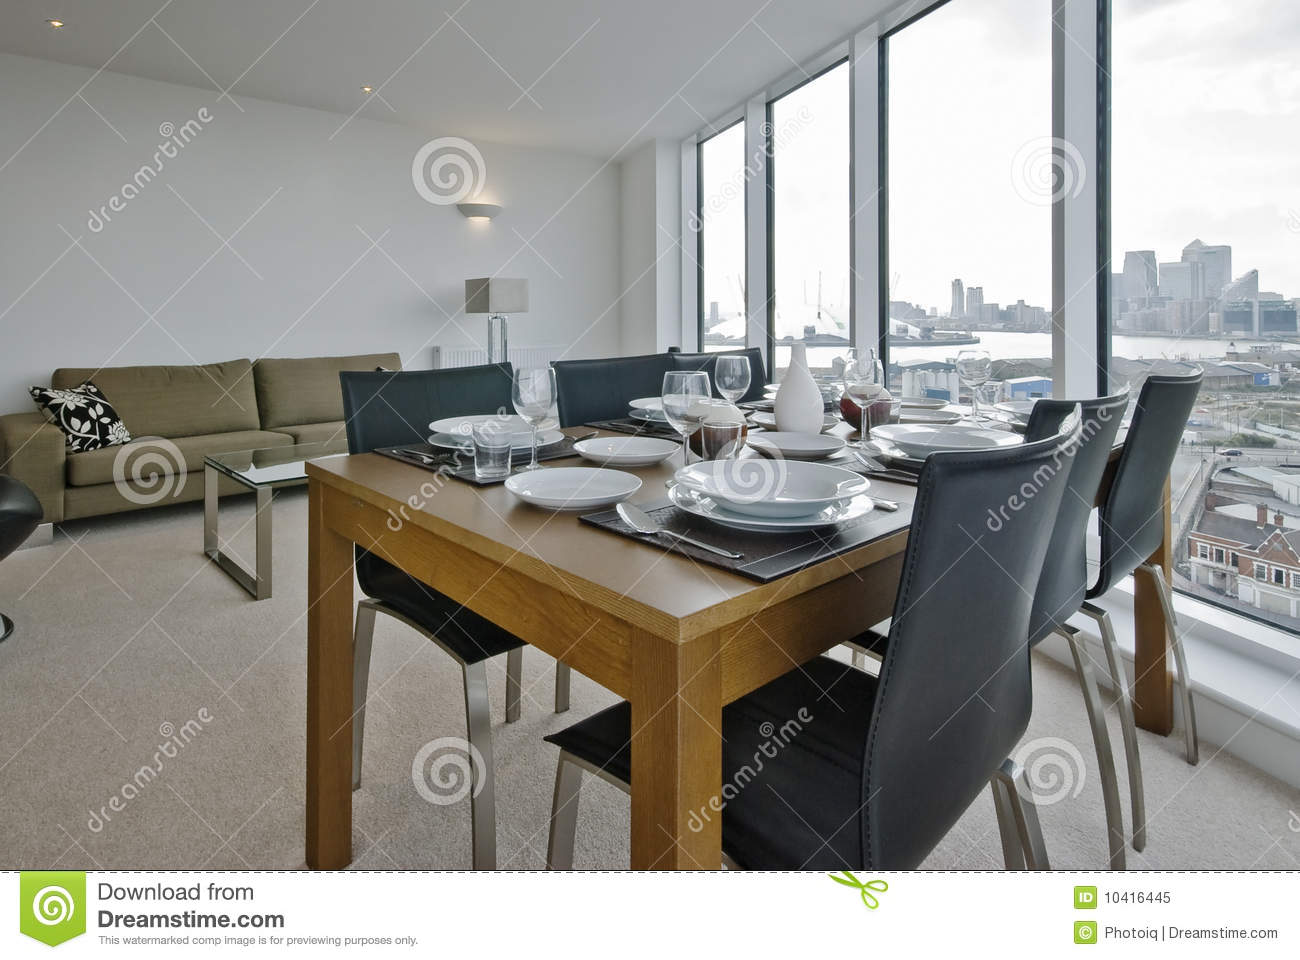 living room with dining table set up royalty free stock photo - Dining Room Set Up